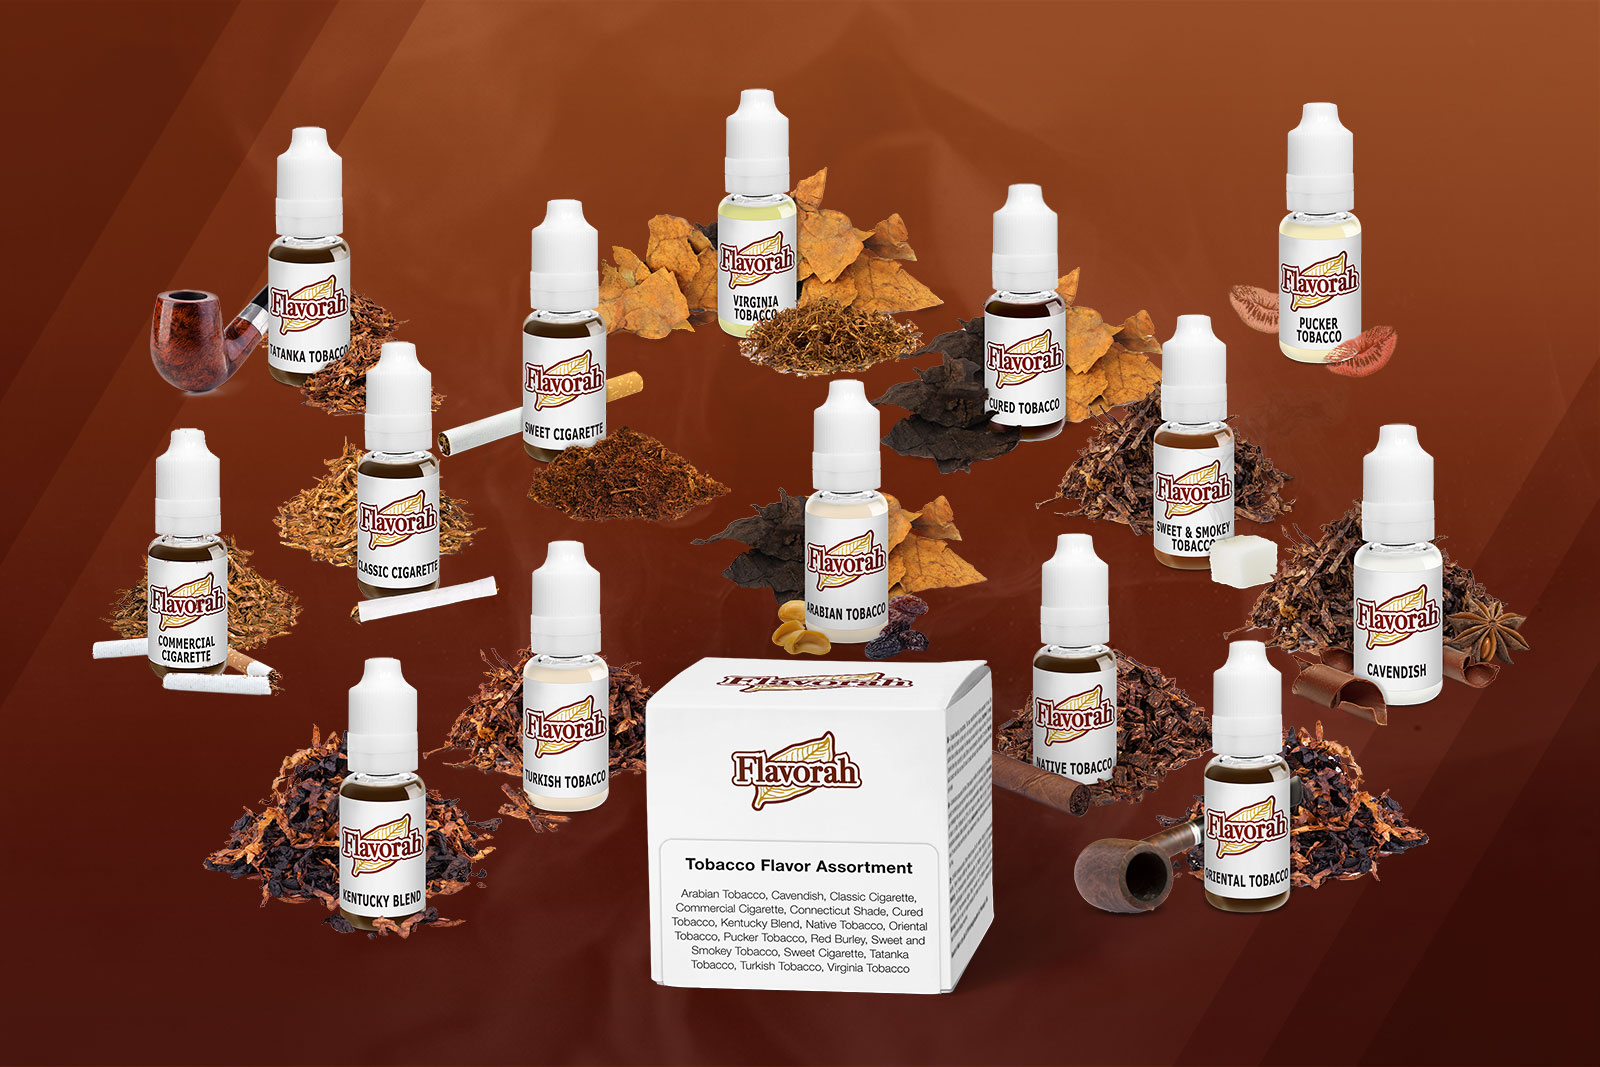 Flavor Assortment Packs